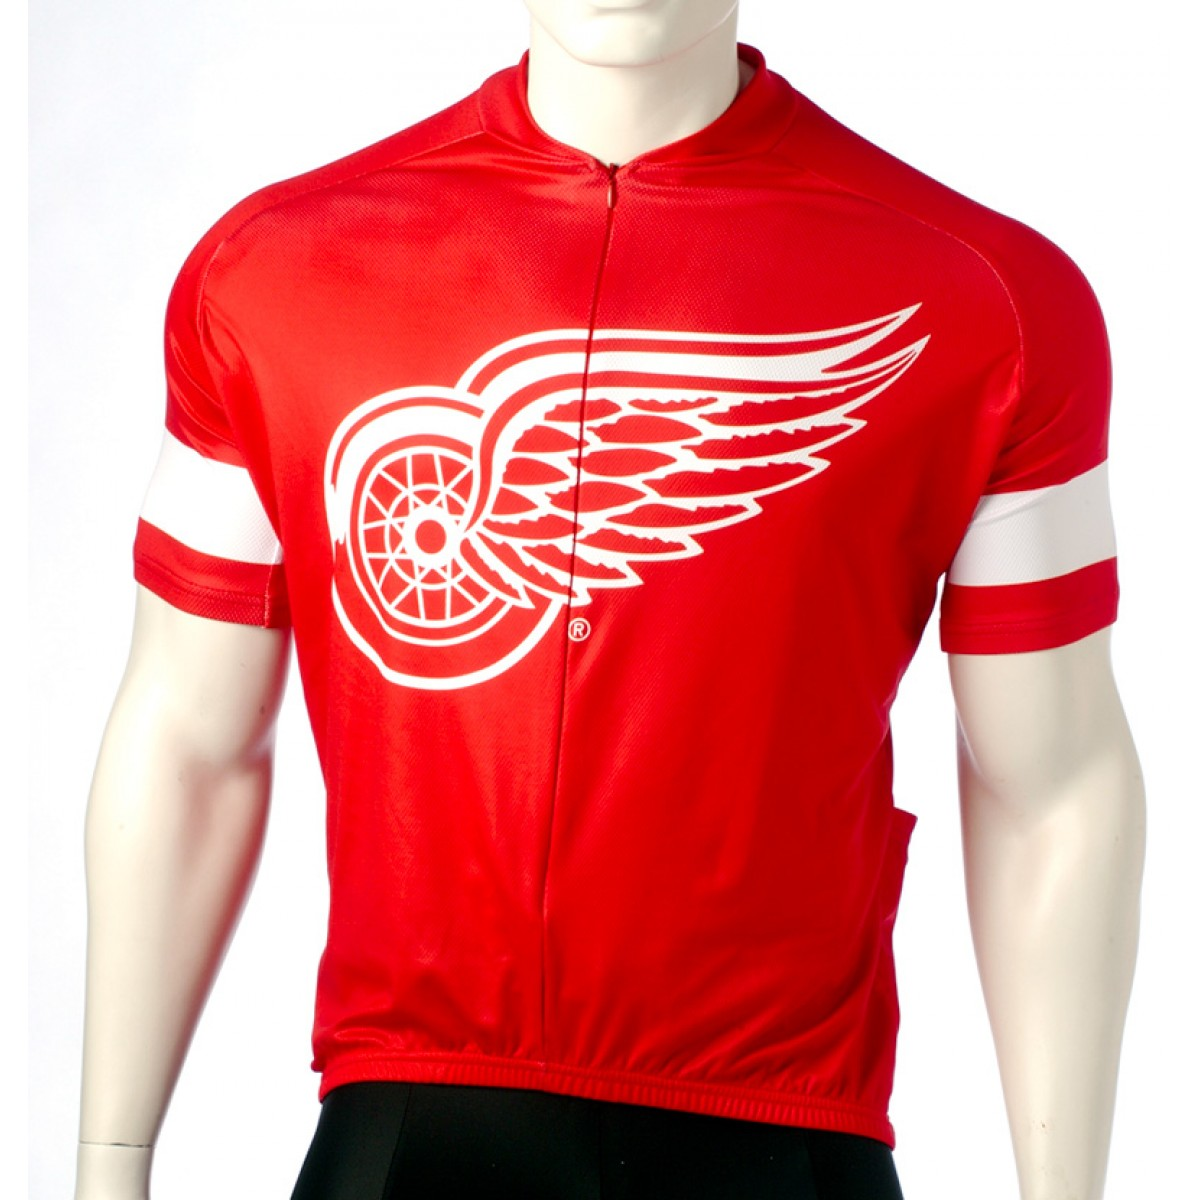 NHL Team Detroit Red Wings Cycling Jersey Short Sleeve